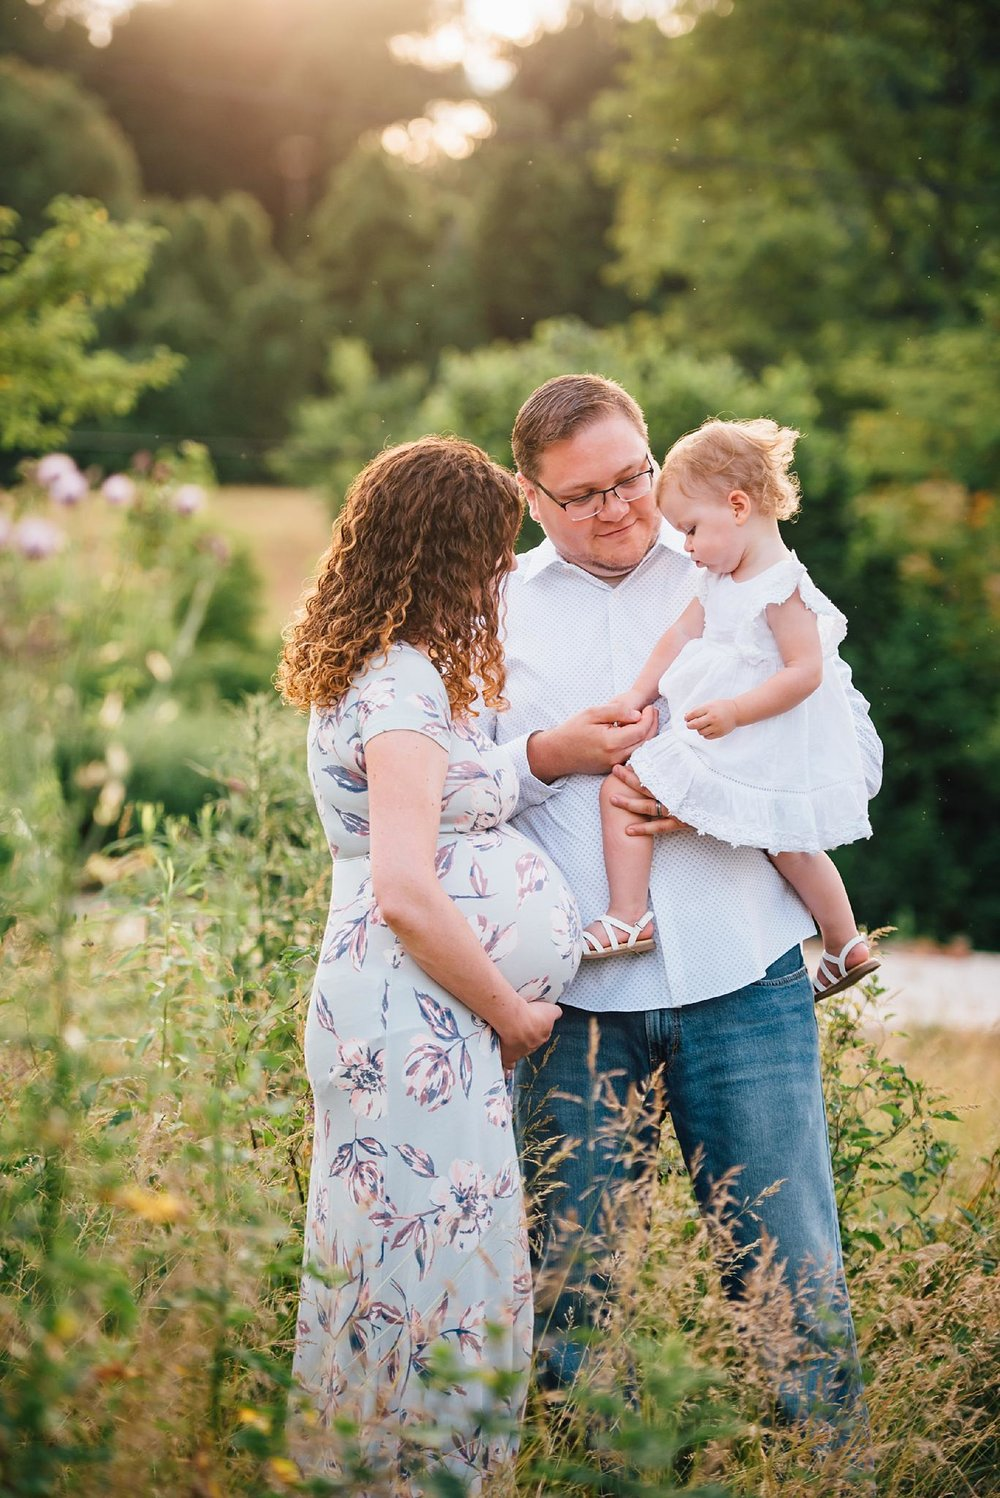 Pittsburgh Rachel Rossetti Maternity Photography Lifestyle Family_0079.jpg